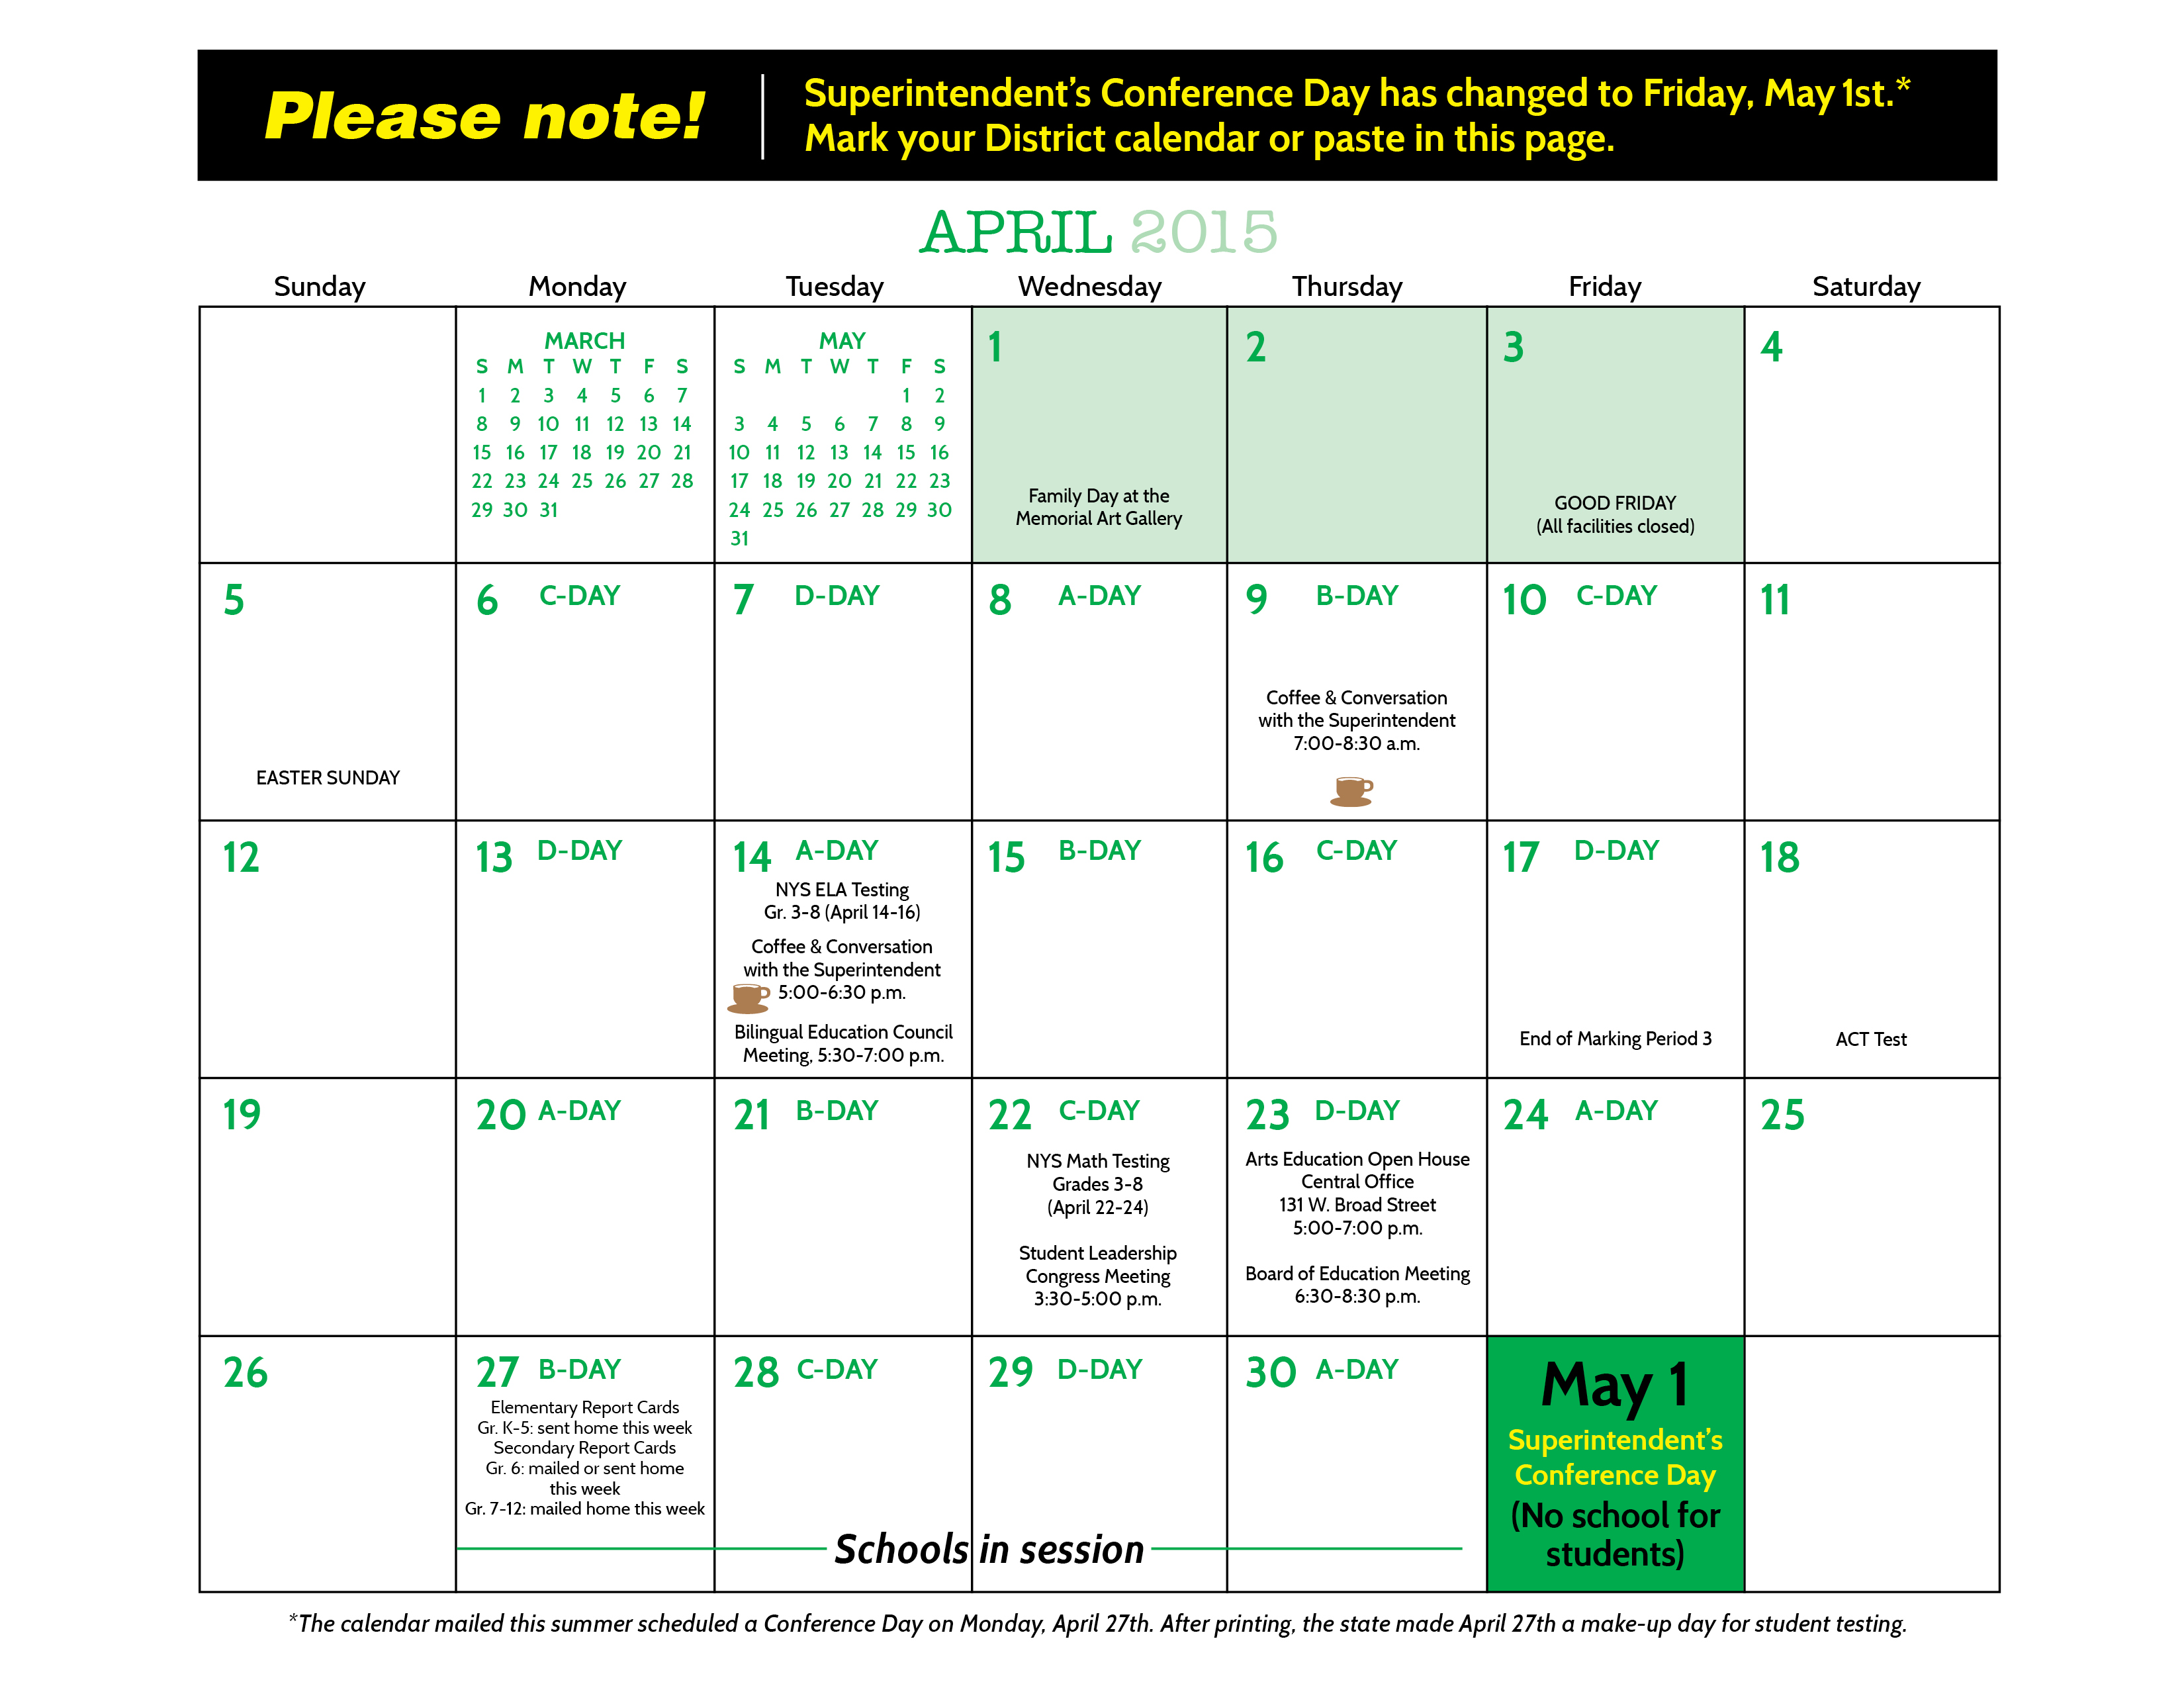 New York City School Calendar 2016 2017